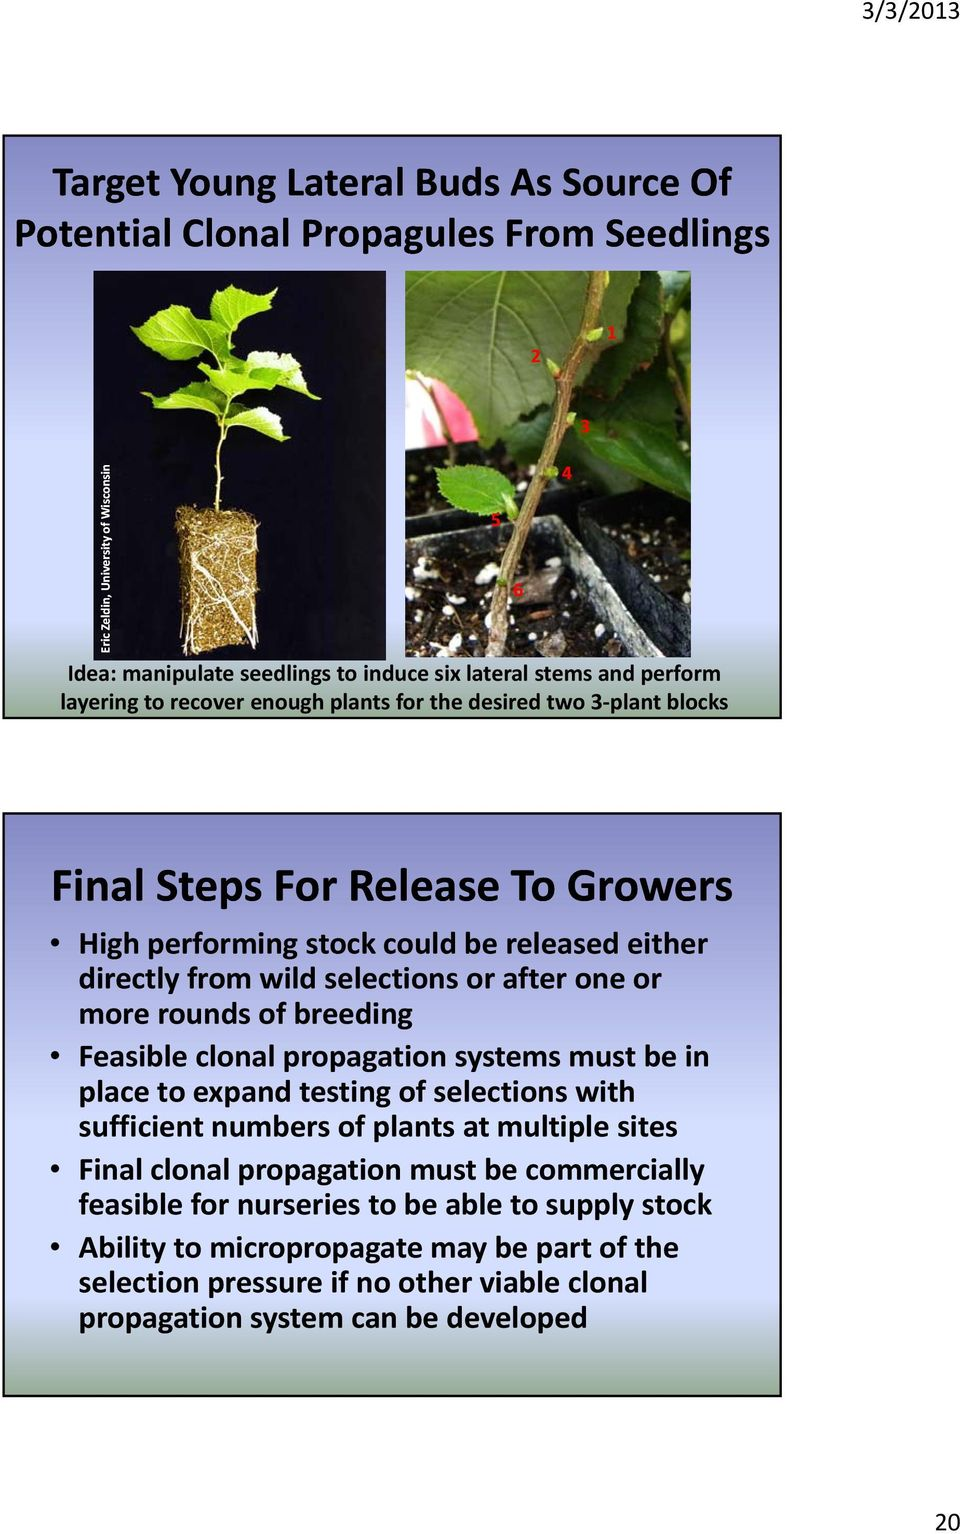 after one or more rounds of breeding Feasible clonal propagation systems must be in place to expand testing of selections with sufficient numbers of plants at multiple sites Final clonal